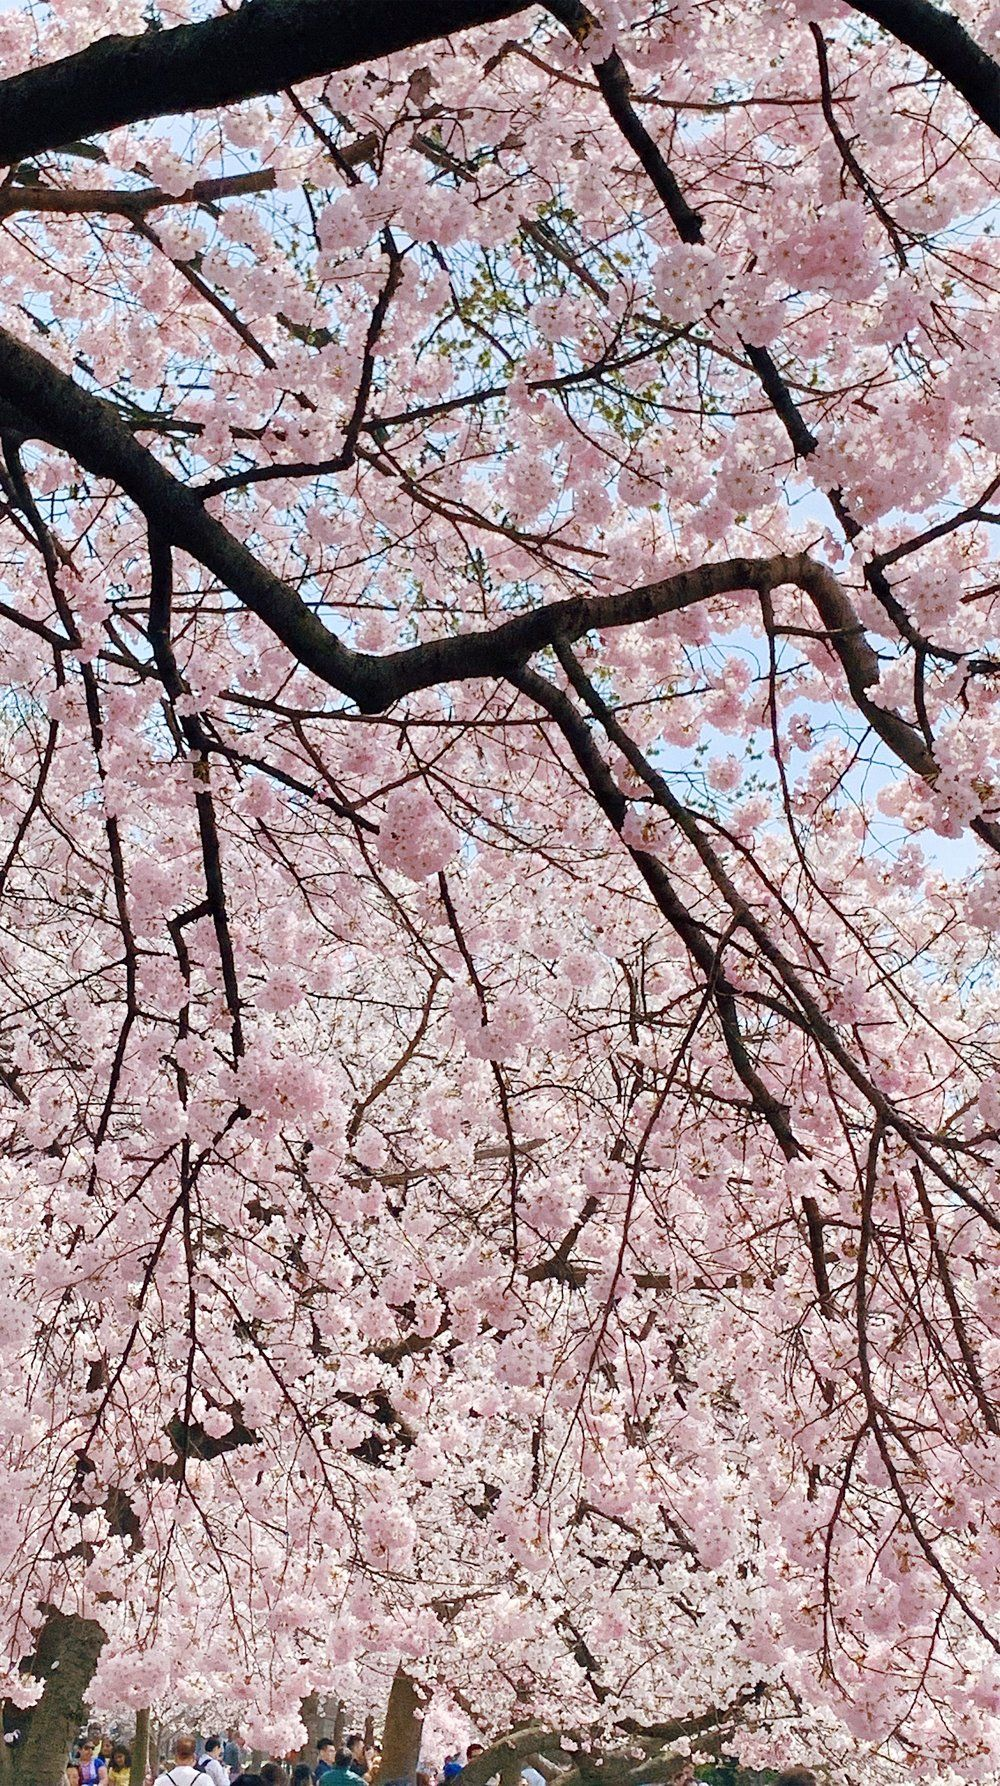 Happy Friday All That Glitters Cherry Blossom Season Cherry Blossom Festival All That Glitters